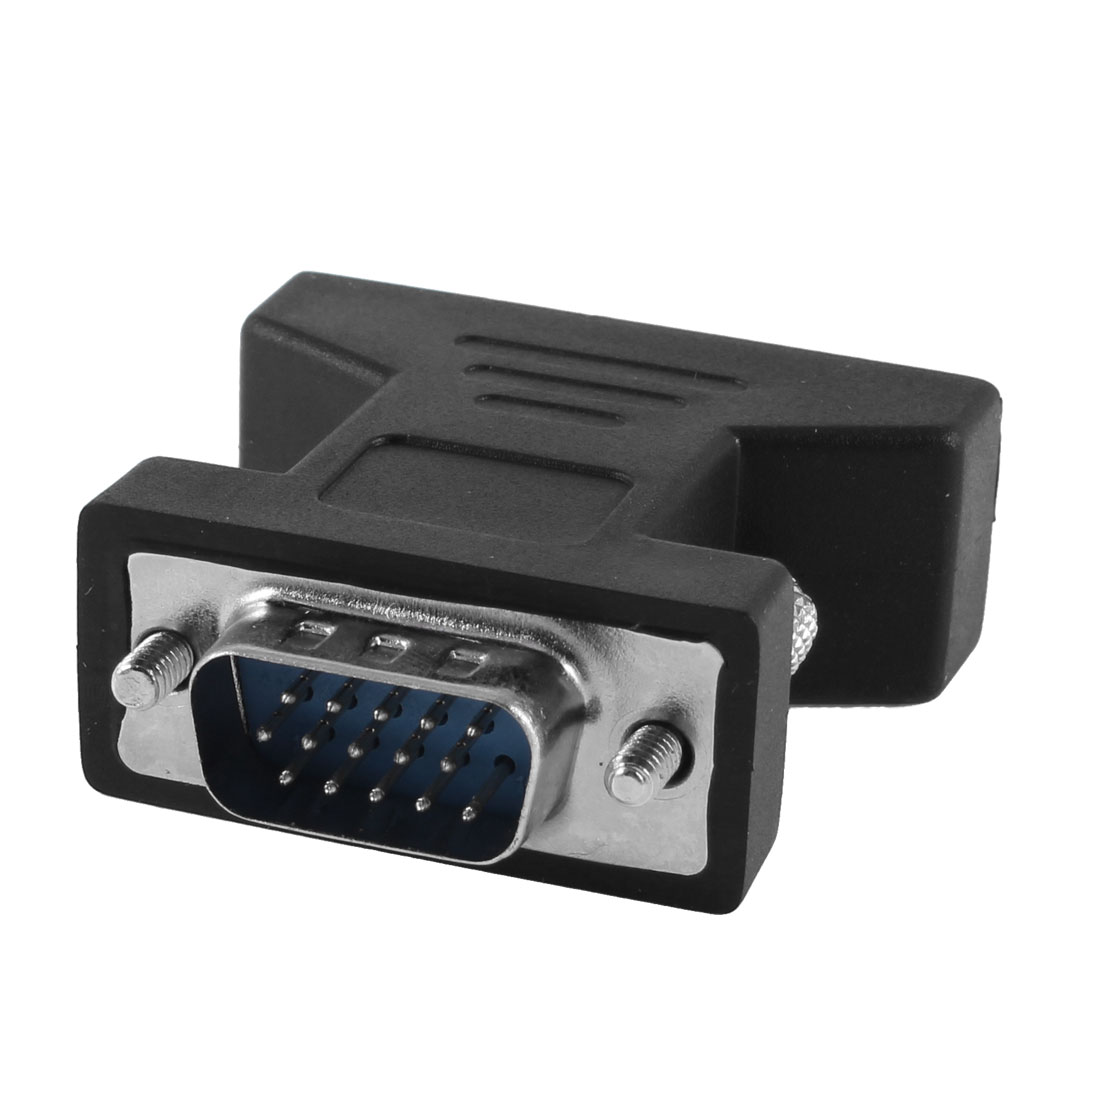 Dual Link DVI-I 24+5 Pin Female to VGA 15 Pin Male Convertor Adapter Black